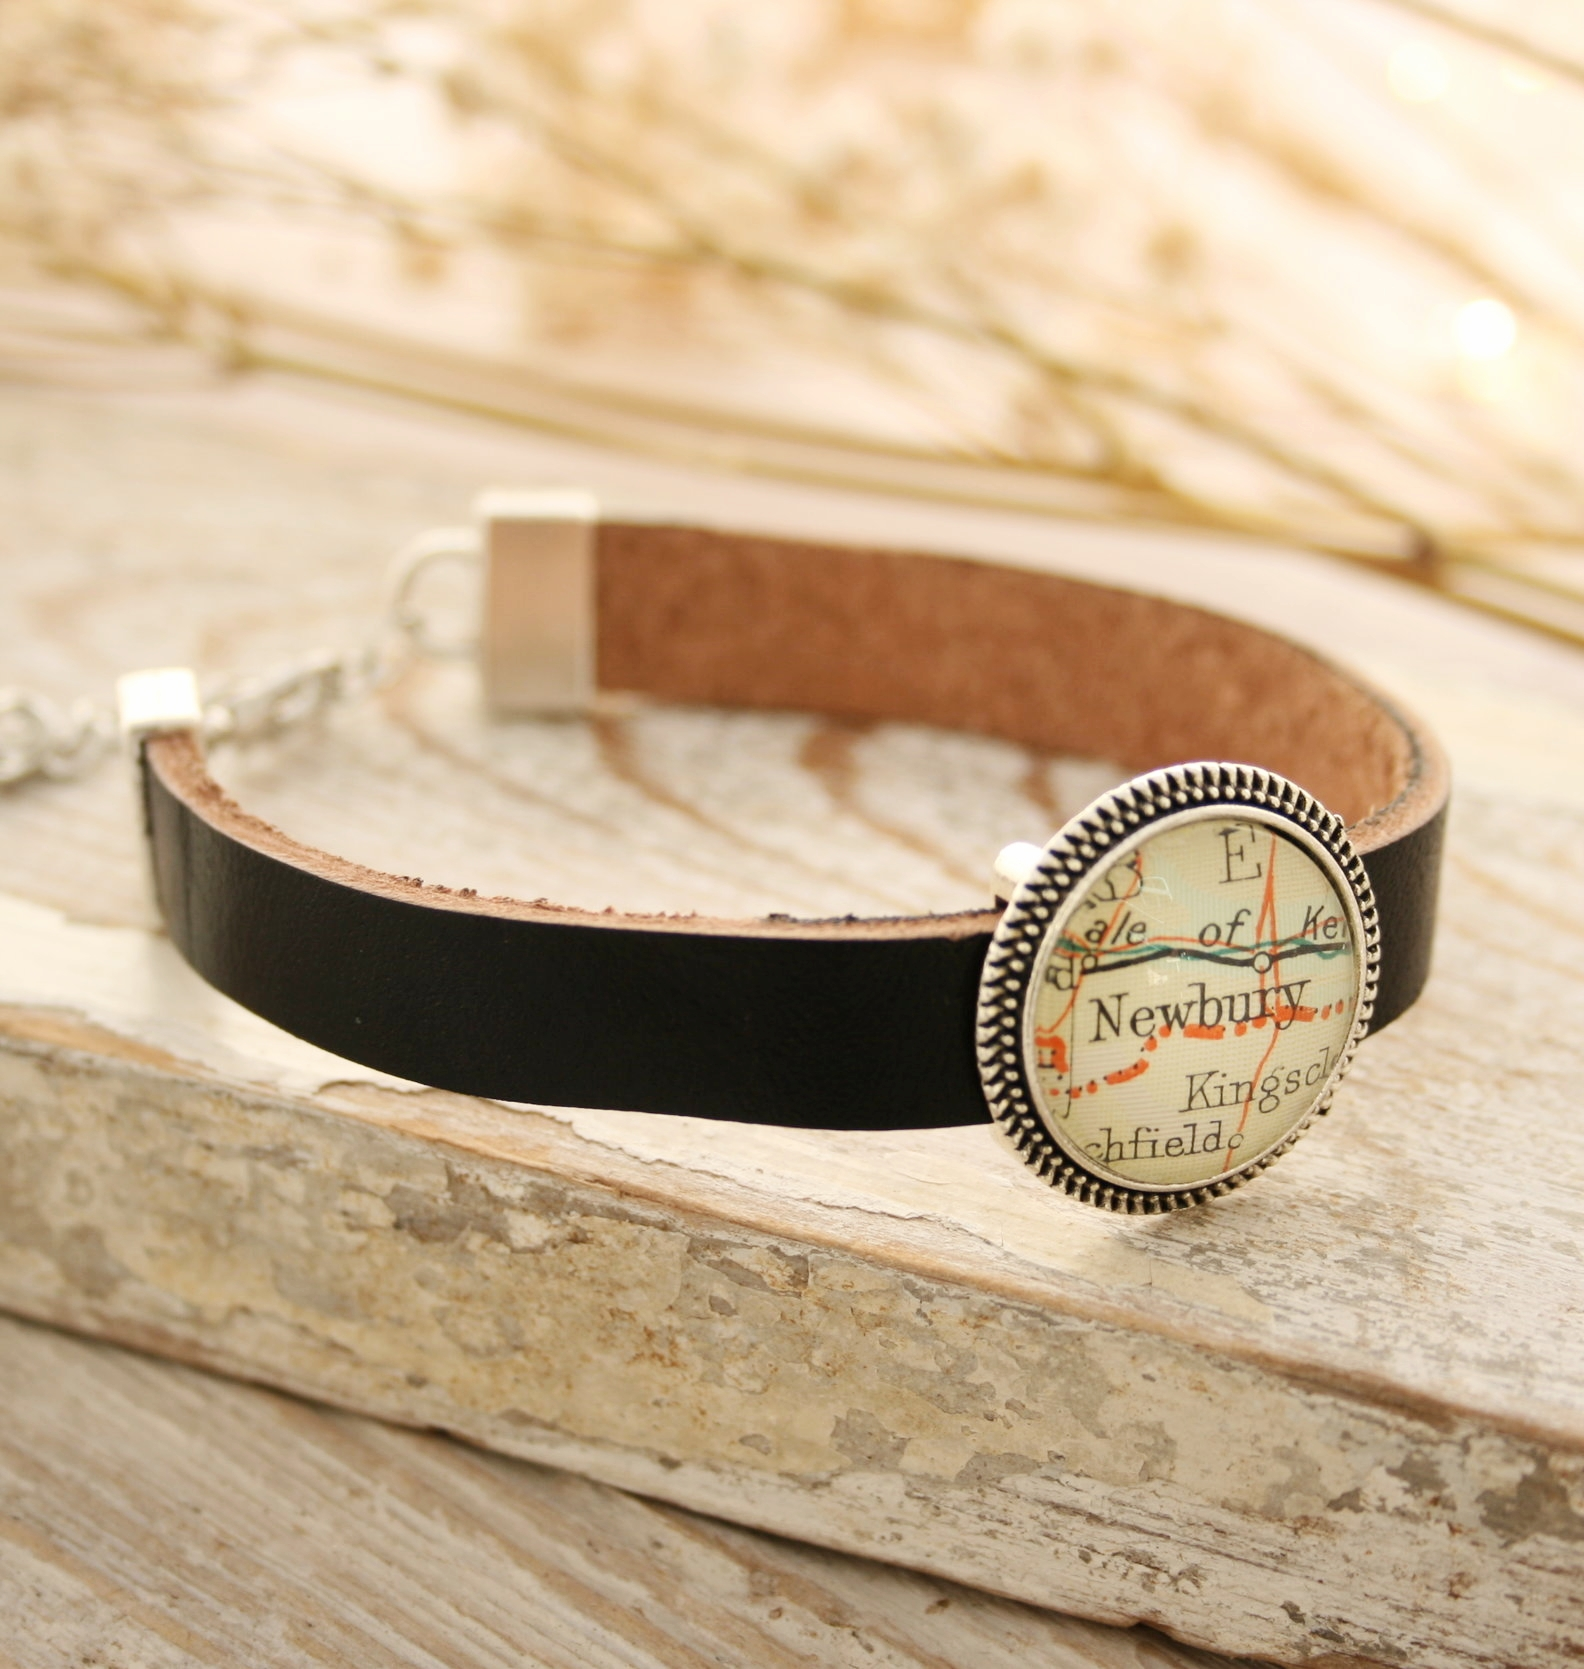 custom bracelet with map of your choice - everyone smiles when see a map of a place with sentiment attachment